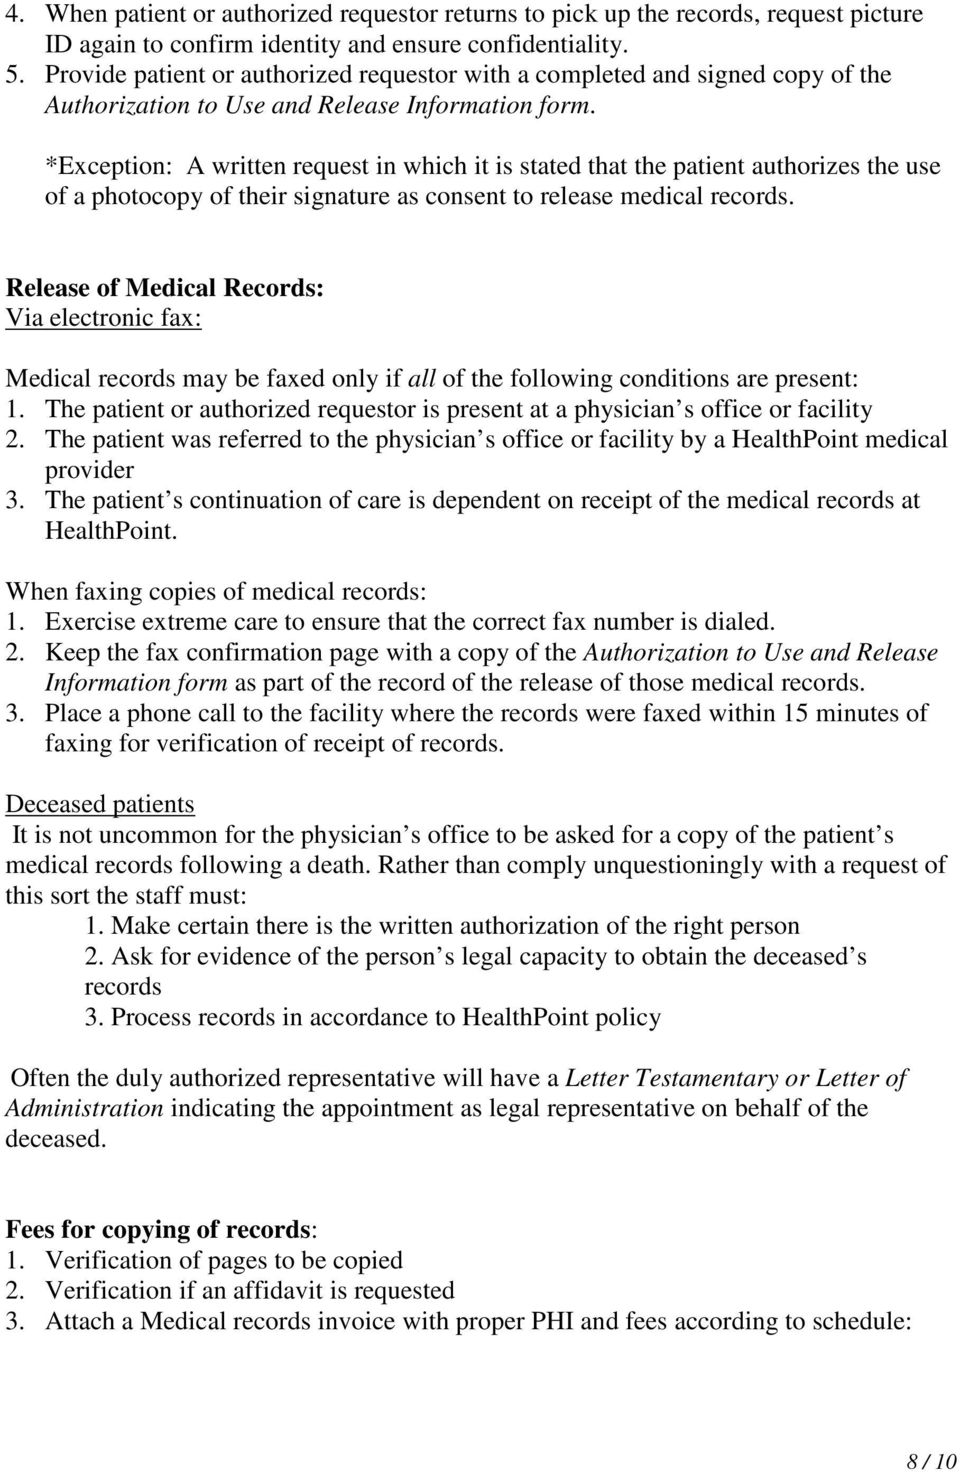 *Exception: A written request in which it is stated that the patient authorizes the use of a photocopy of their signature as consent to release medical records.